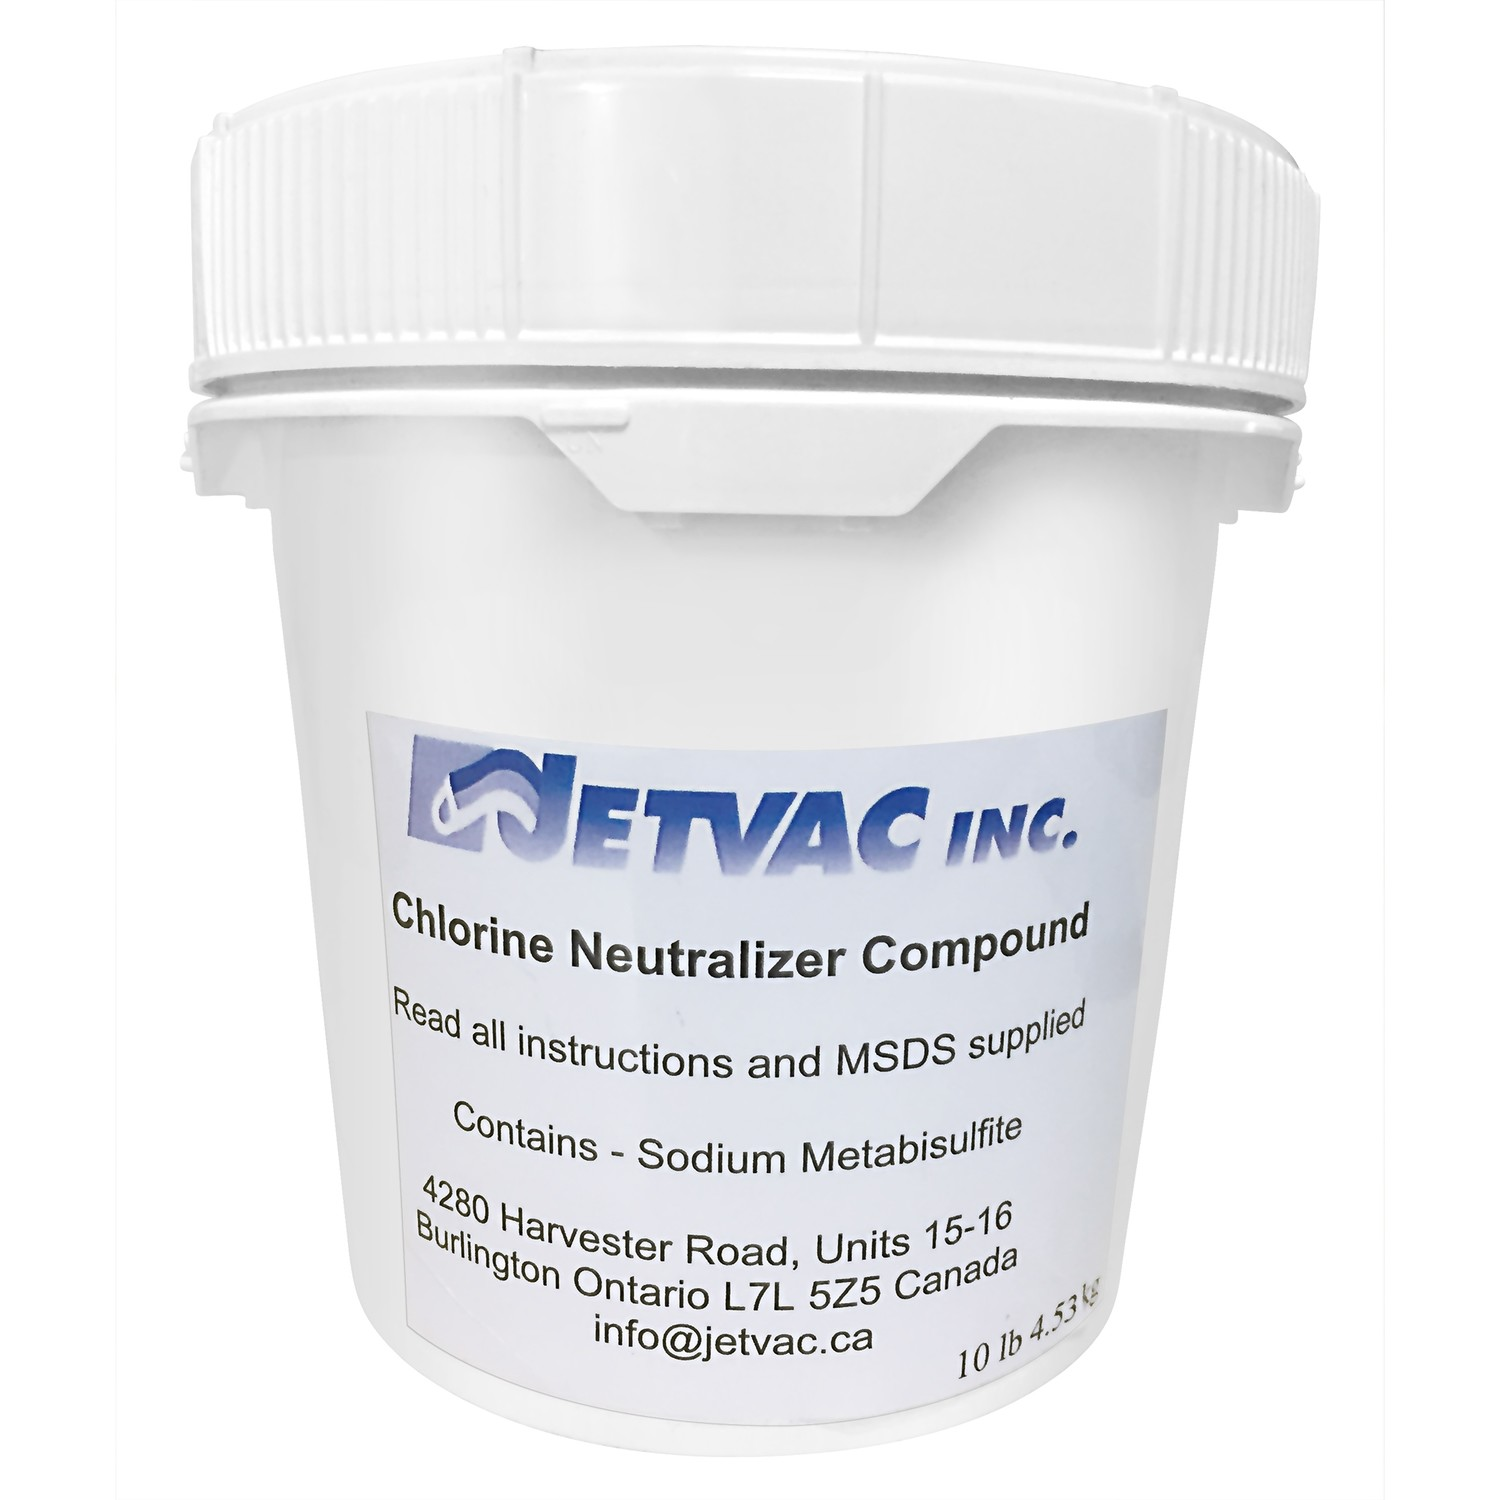 Chlorine Neutralizer Compound With Sodium Metabisulfite - 10 lb PAIL